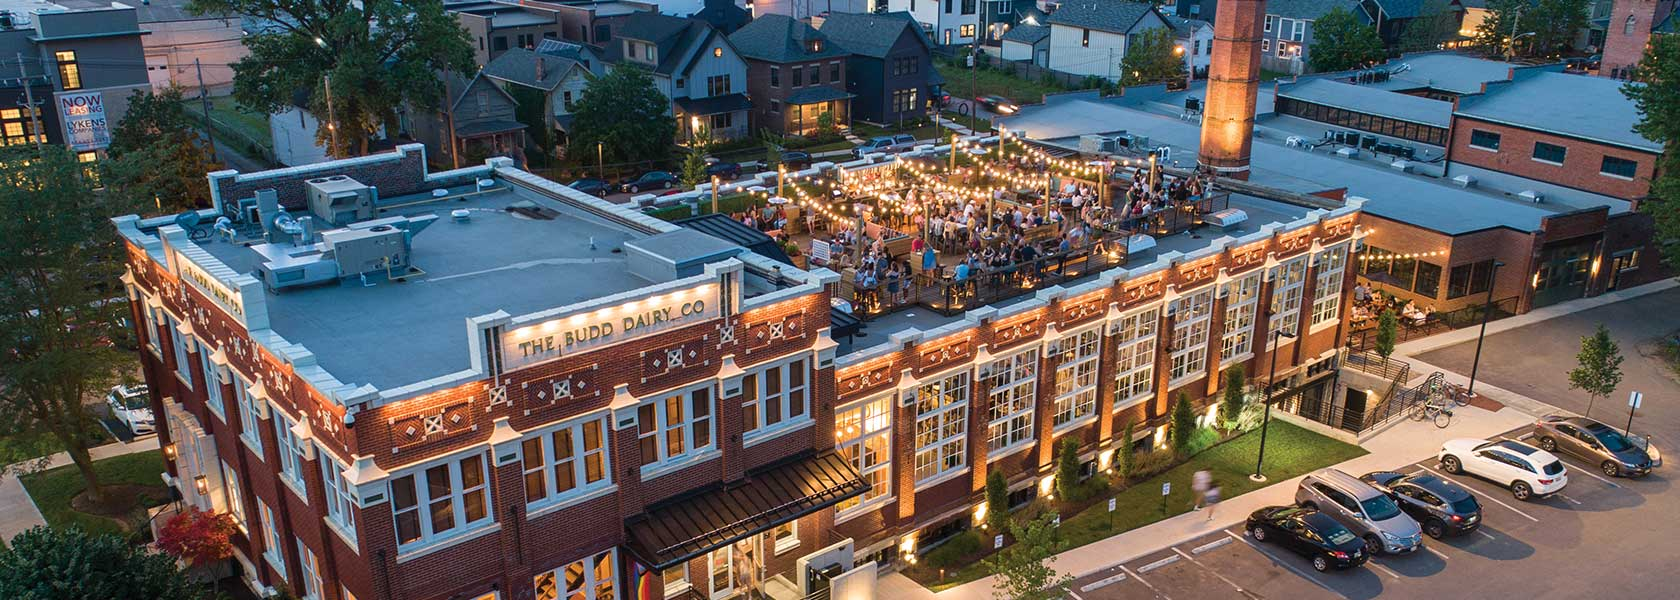 Aerial view of Budd Dairy Food Hall at sunset with crowd on roof.